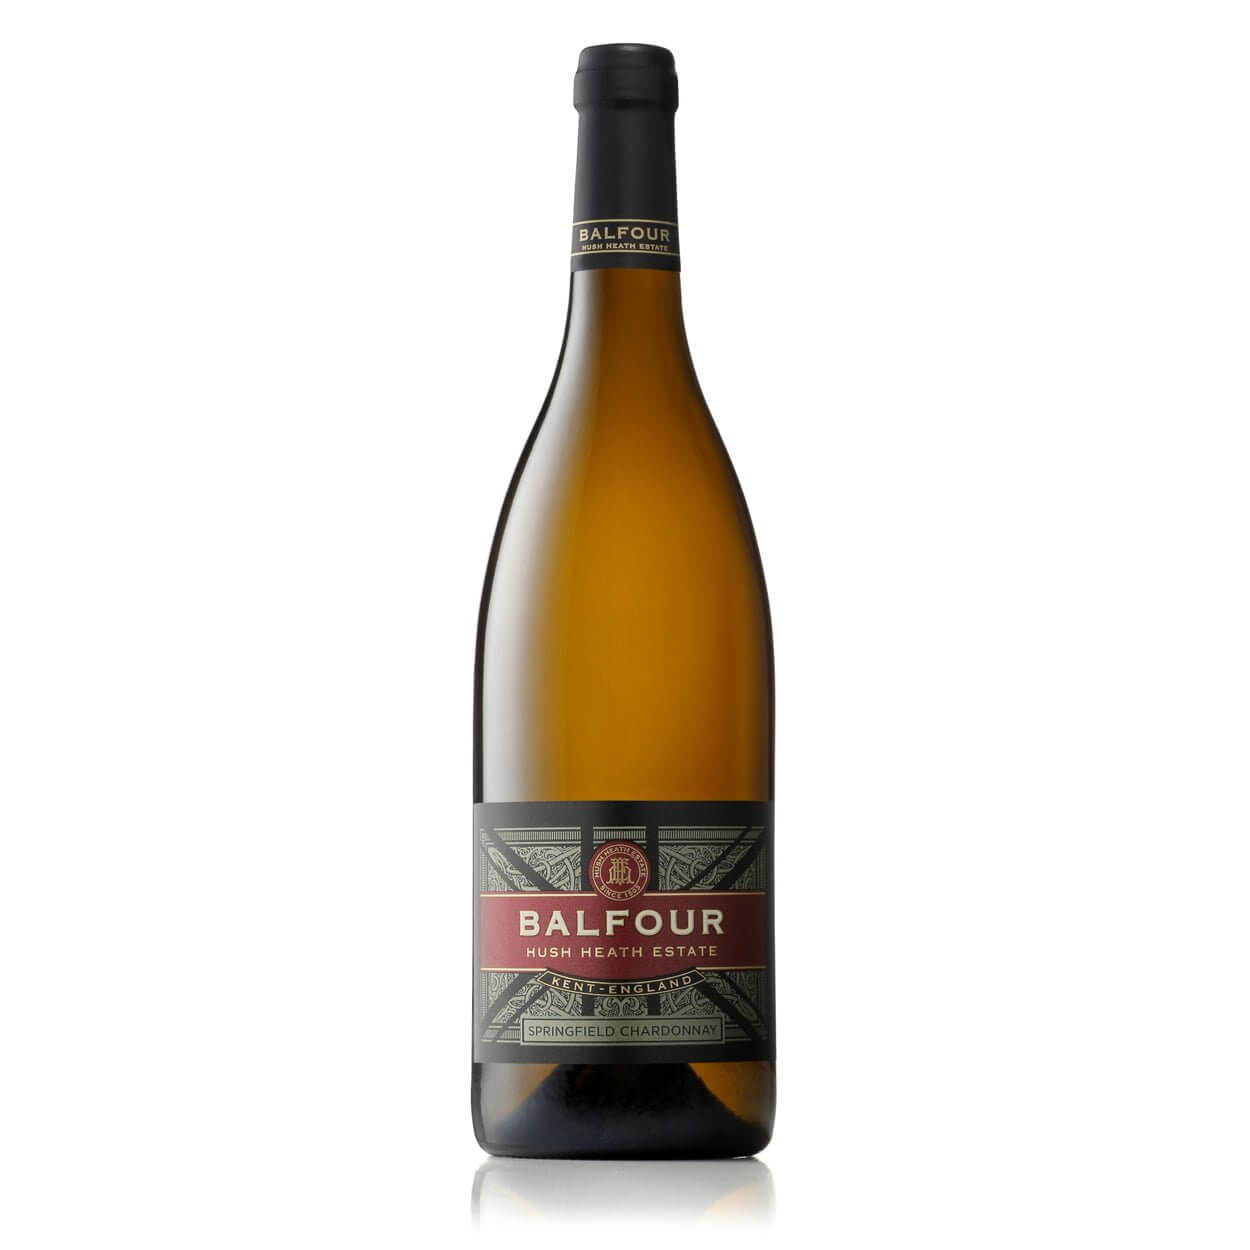 Balfour Springfield Chardonnay 2018 English White Wine